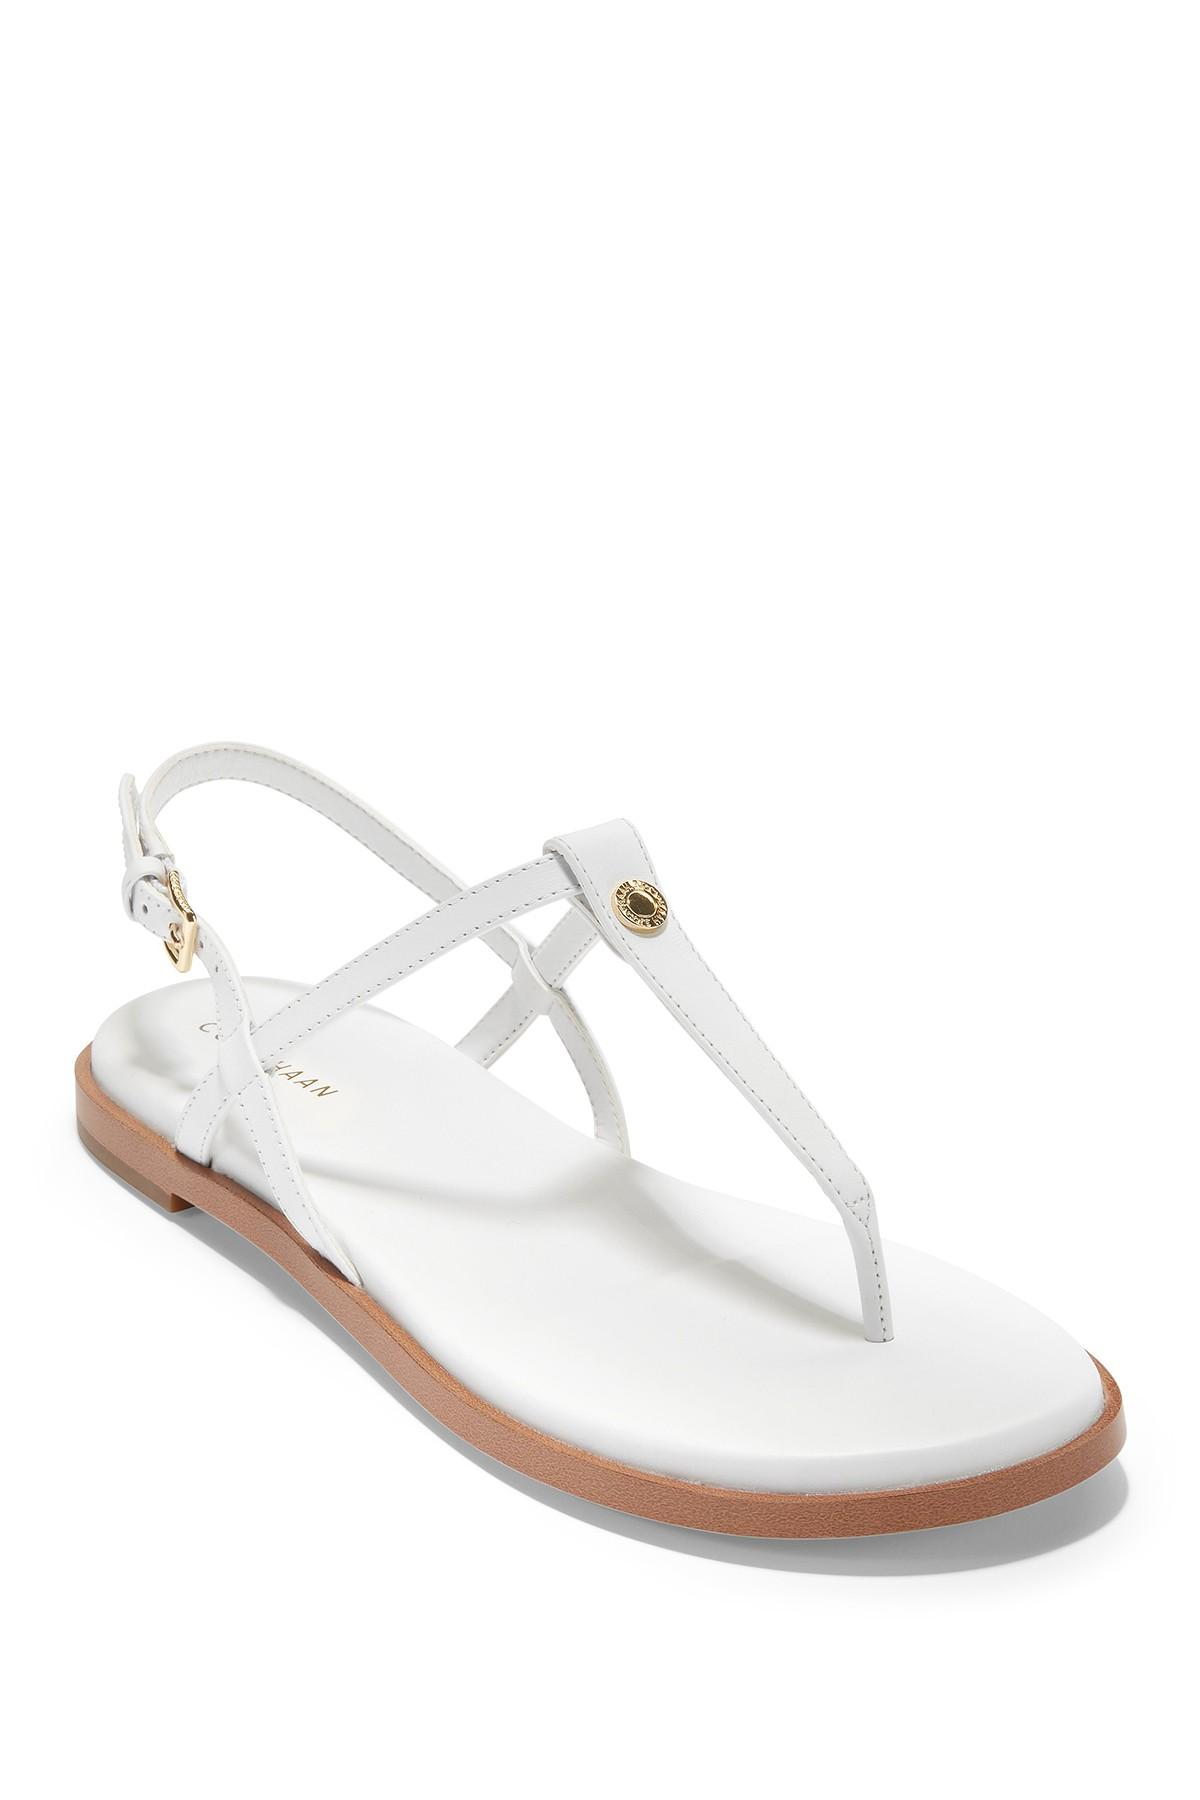 Cole Haan Flora Thong Sandal in White